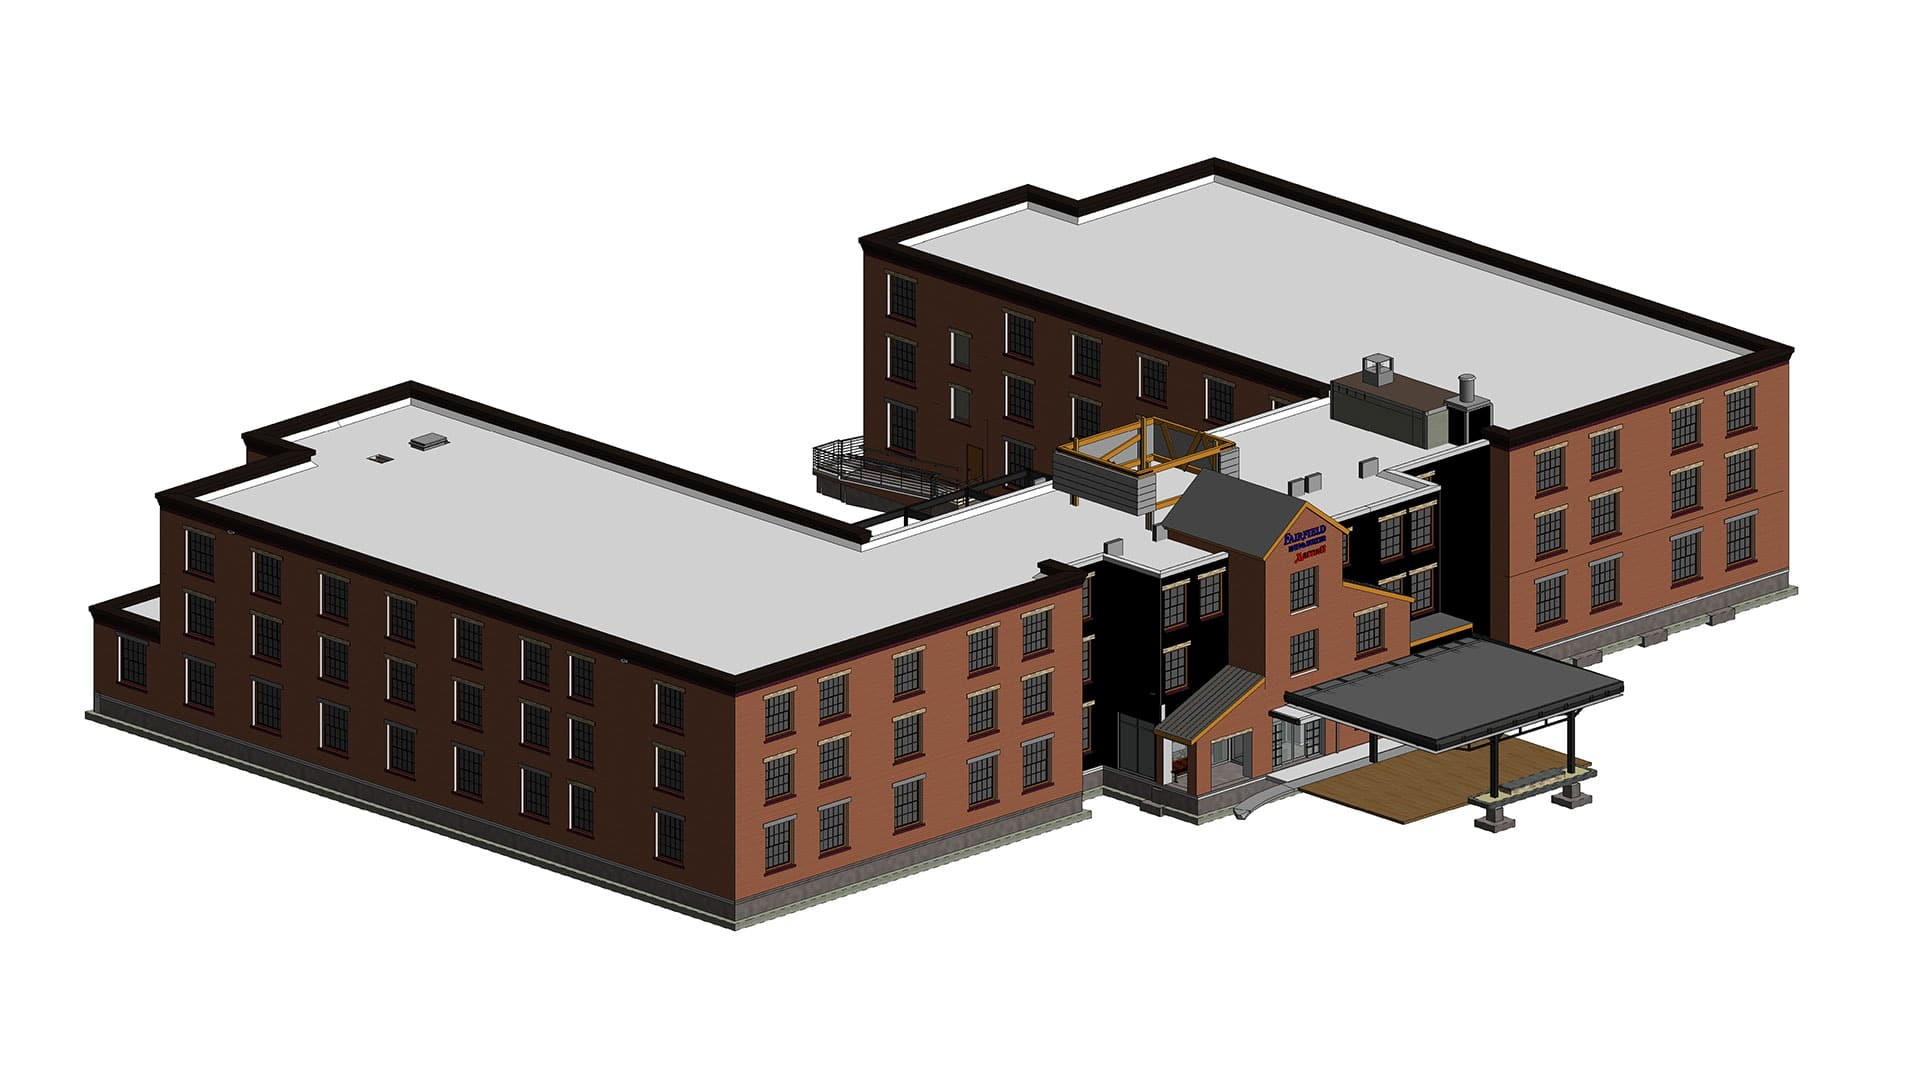 3D-Revit-architectural-model-of-red-brick-hotel-building-project-modeled-by-United-BIM